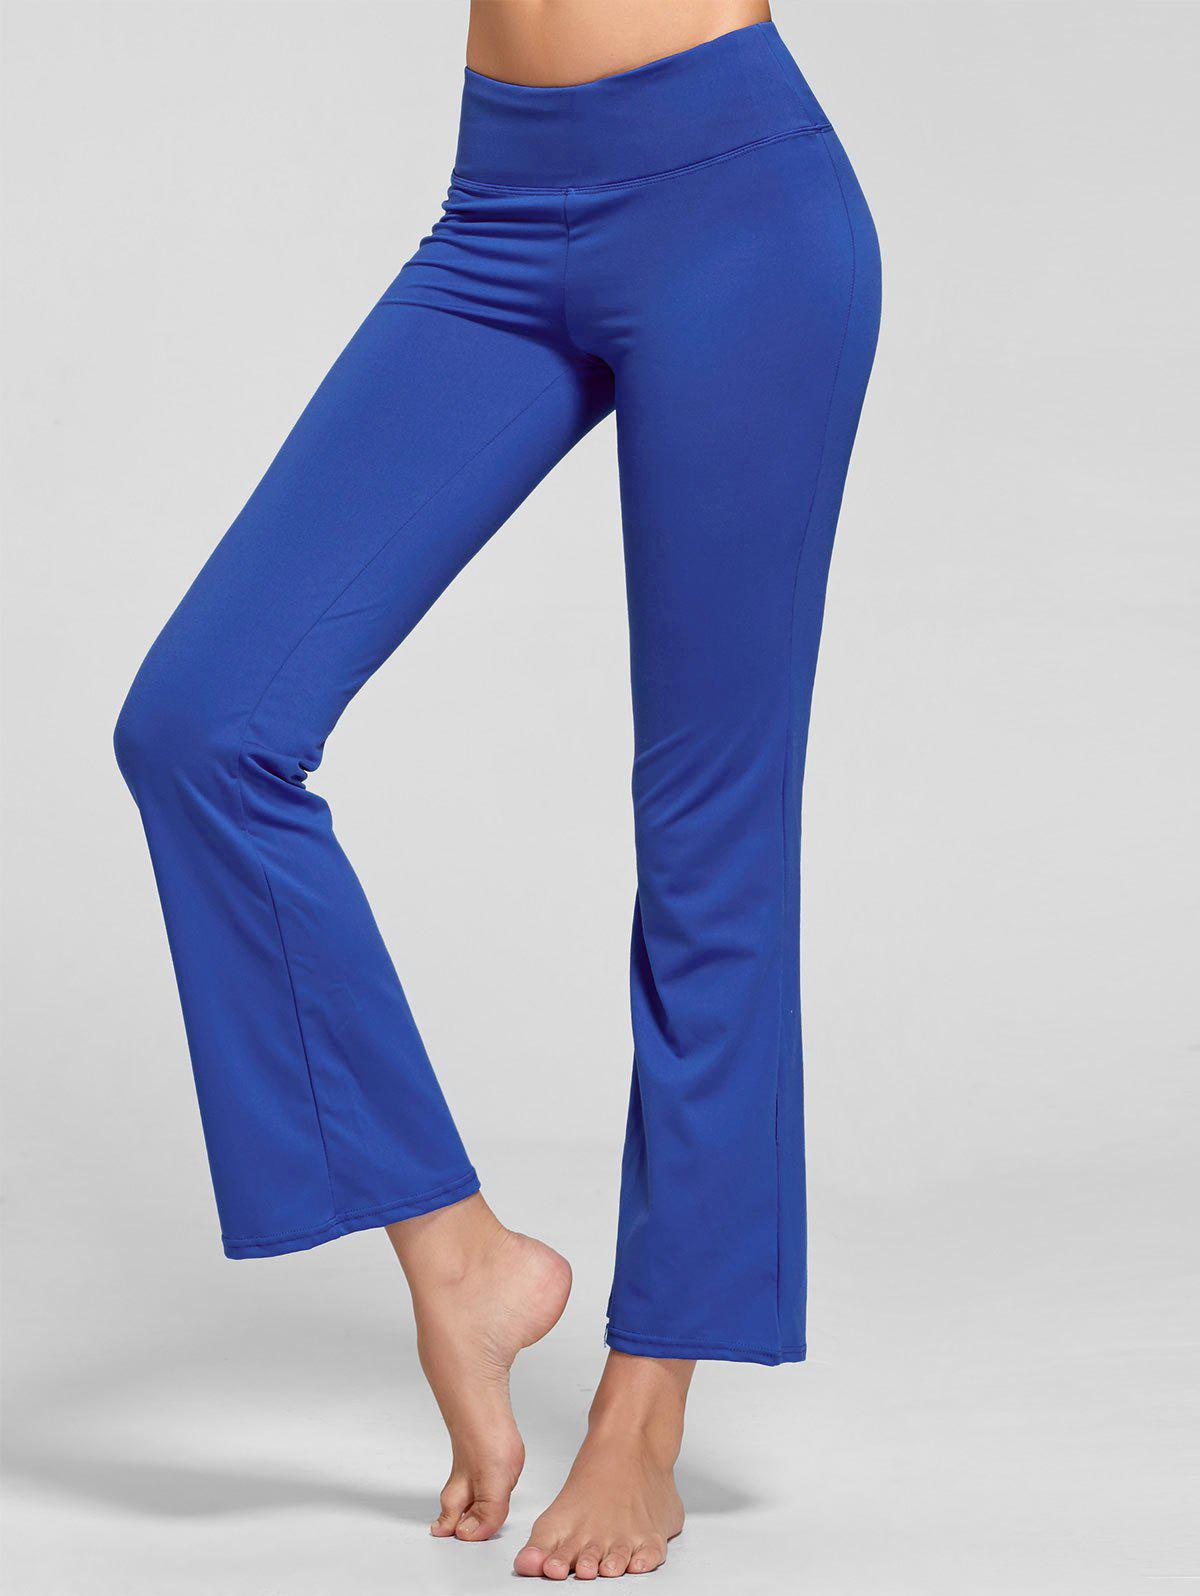 Stretch Bootcut Yoga Pants with Pocket - BLUE XL